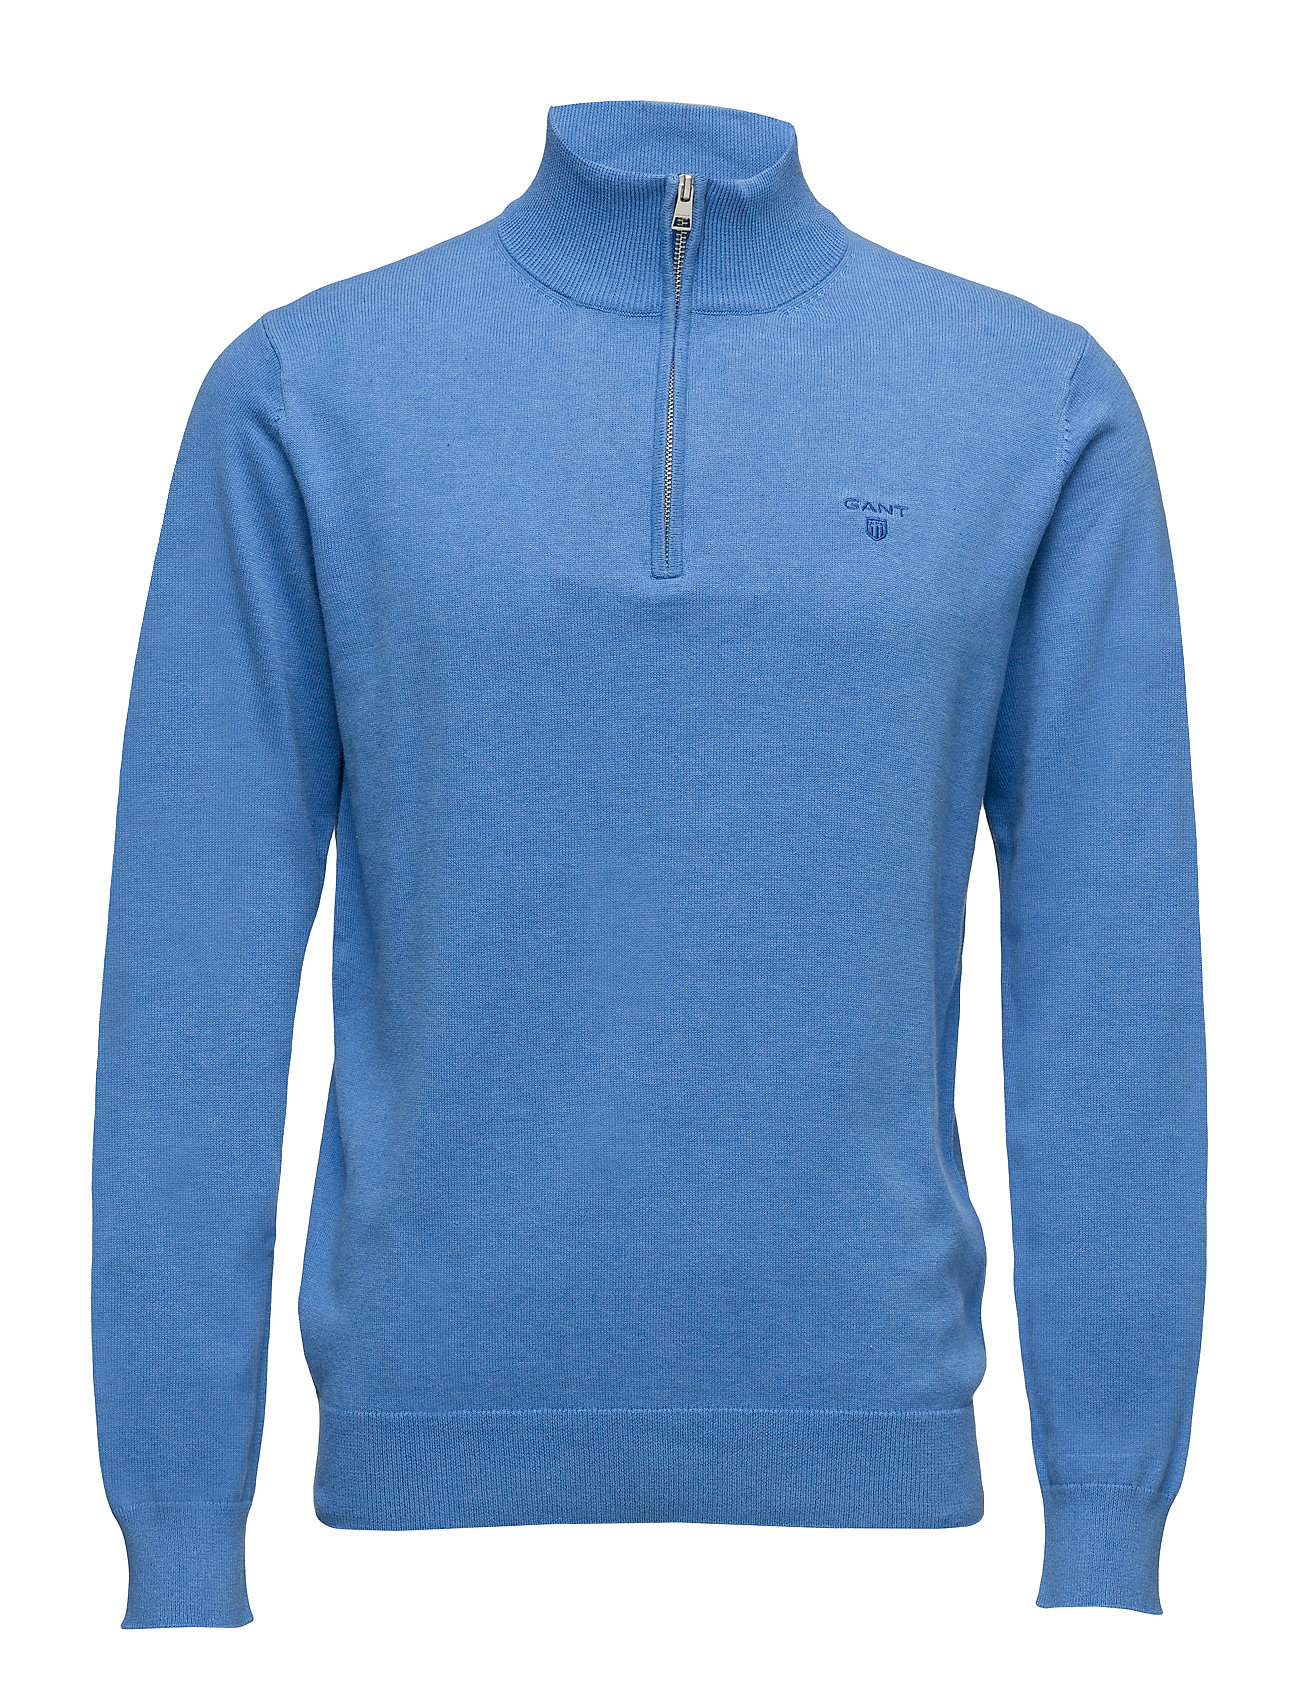 GANT LT. WEIGHT COTTON ZIP